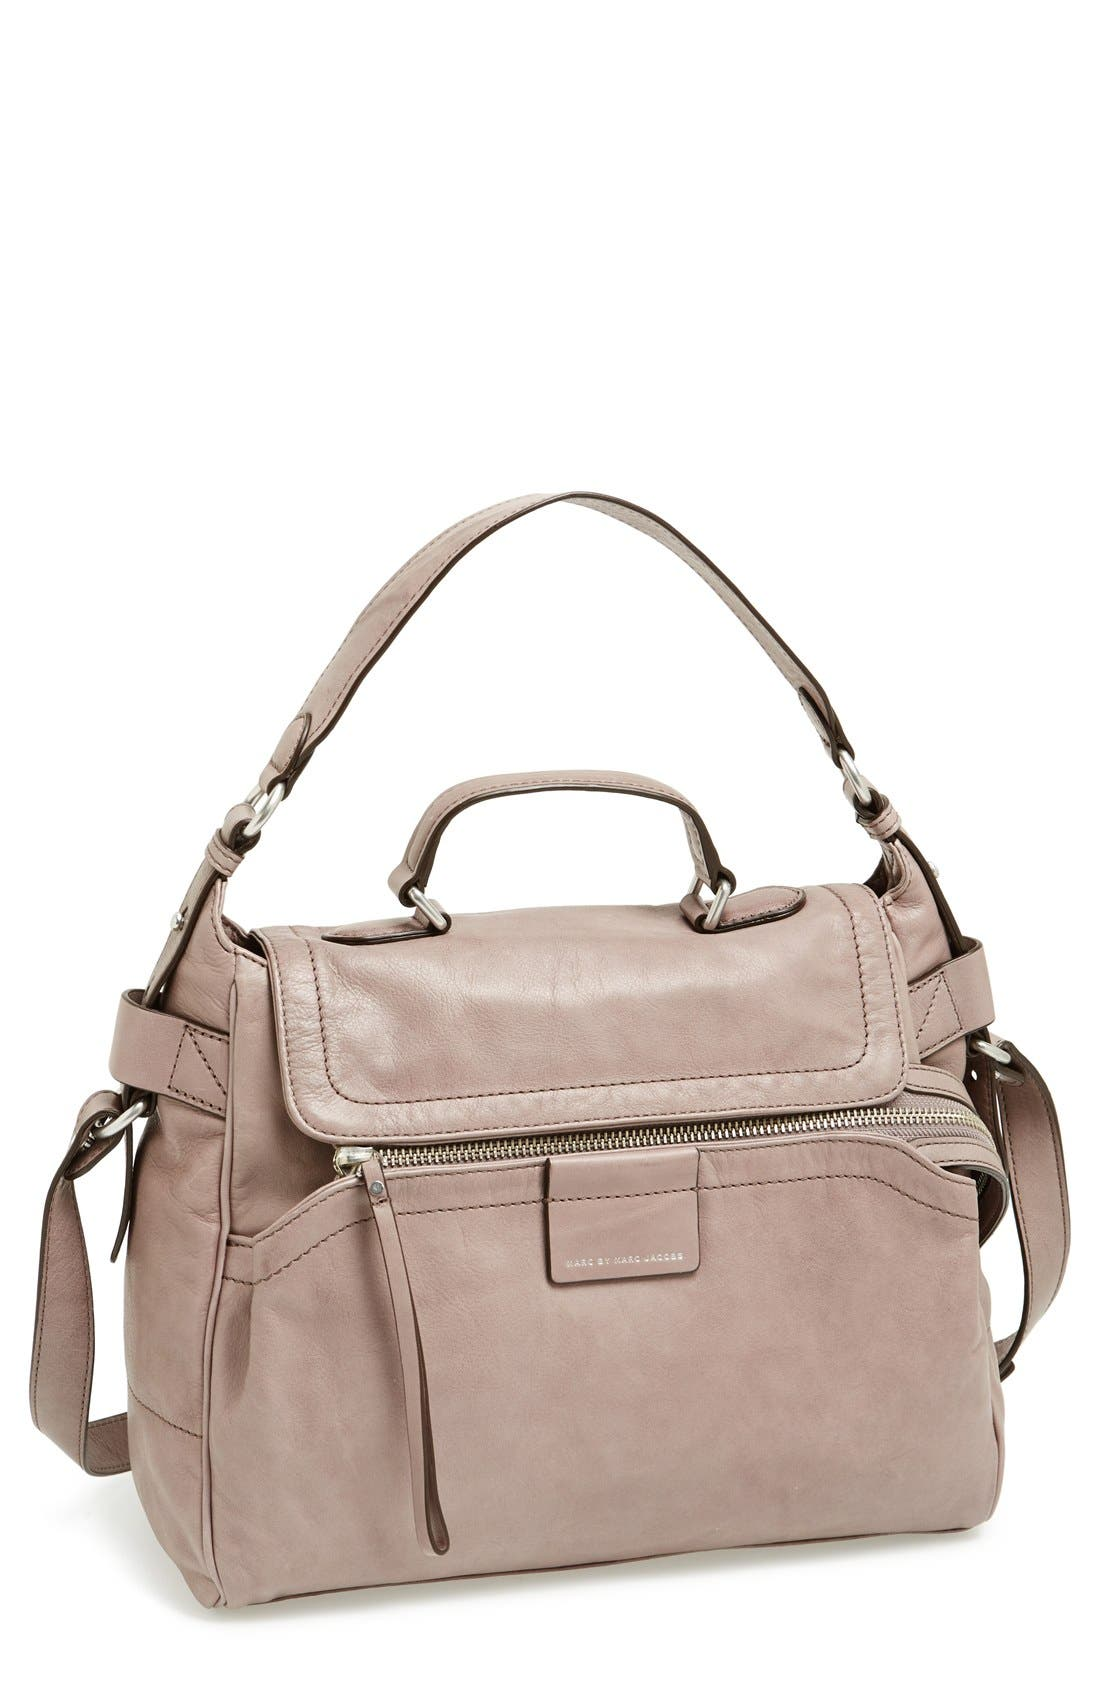 Alternate Image 1 Selected - MARC BY MARC JACOBS Moto Satchel